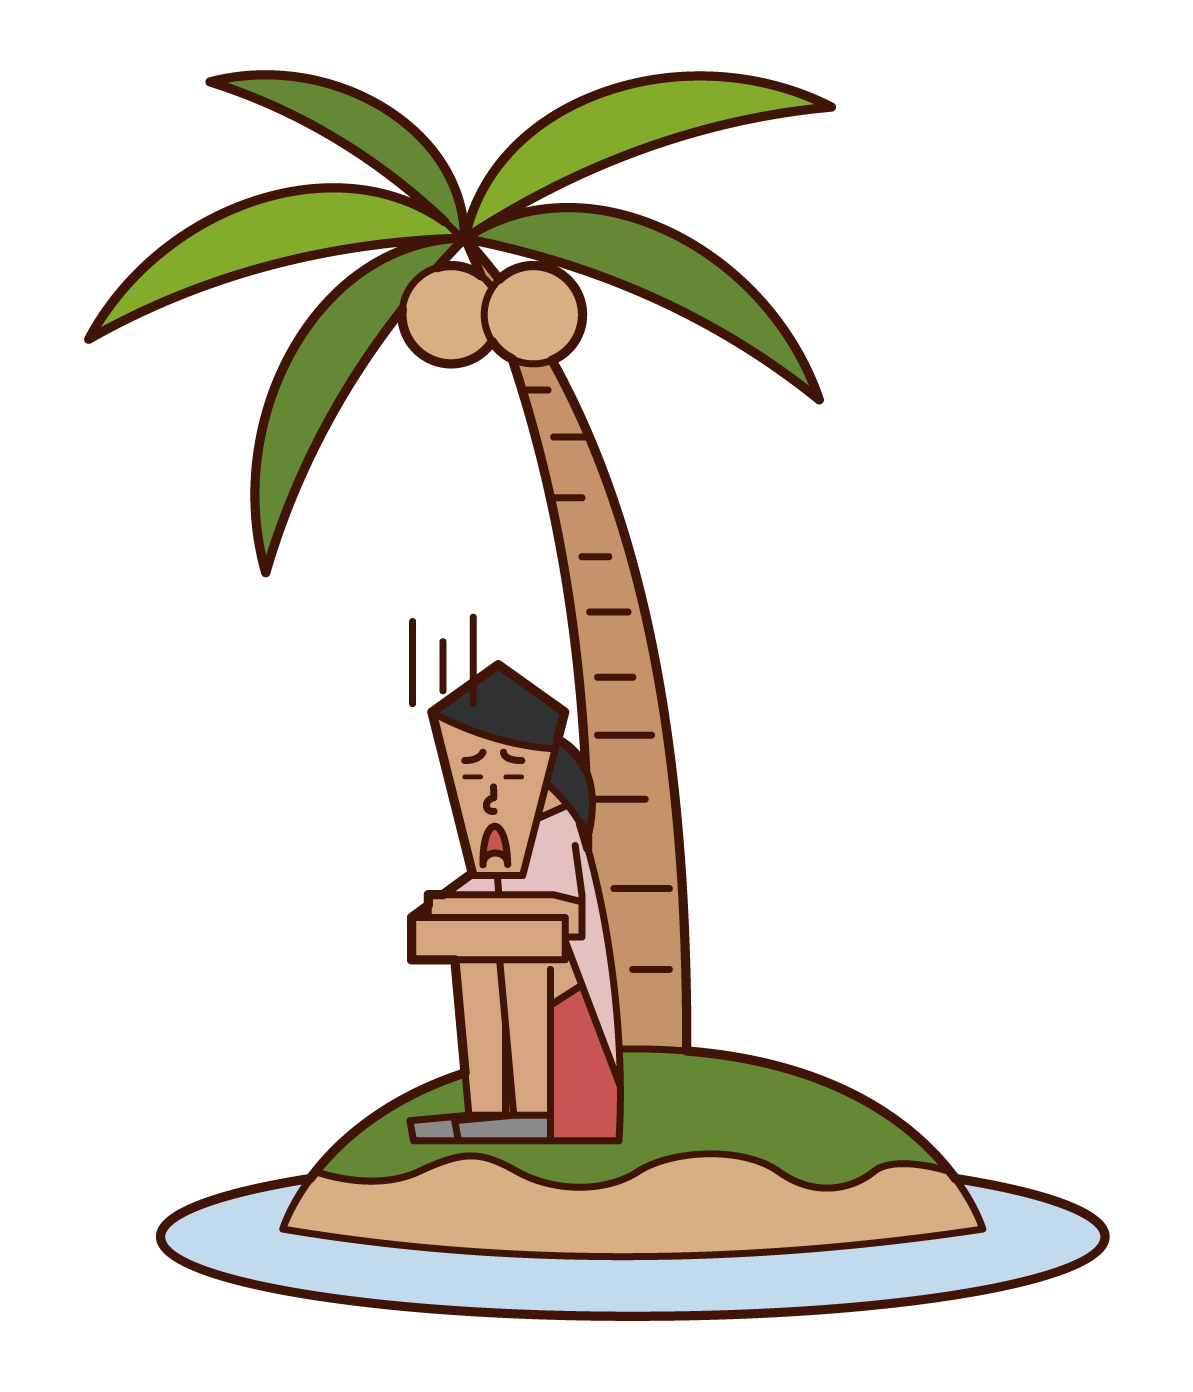 Illustration of a woman who arrived at a deserted island in distress